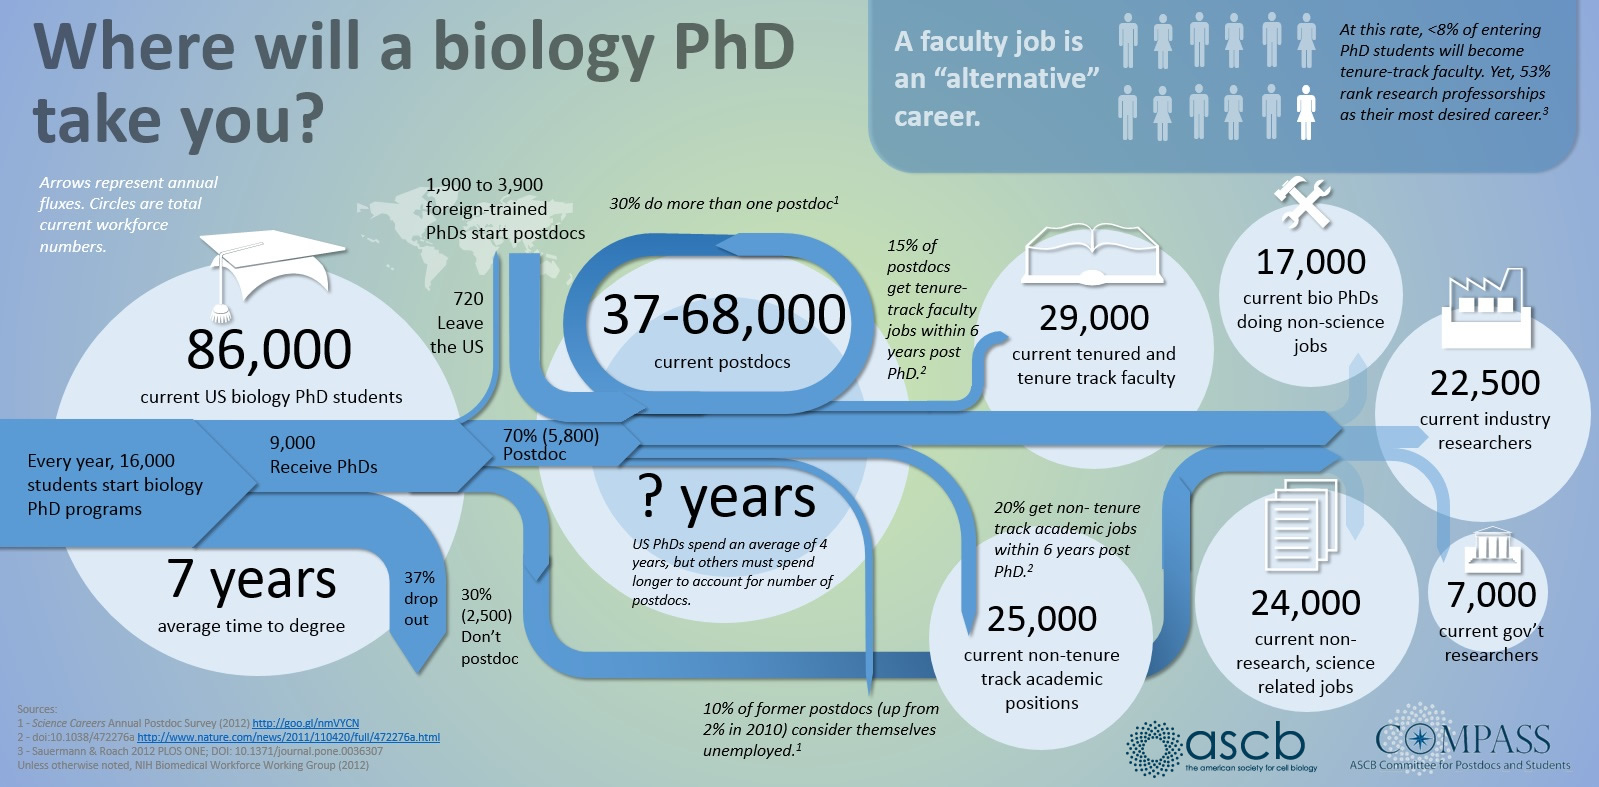 tufts postdoctoral association blog non traditional careers thegradstudentway com blog wp content uploads 2014 05 biologyphdtrack jpg